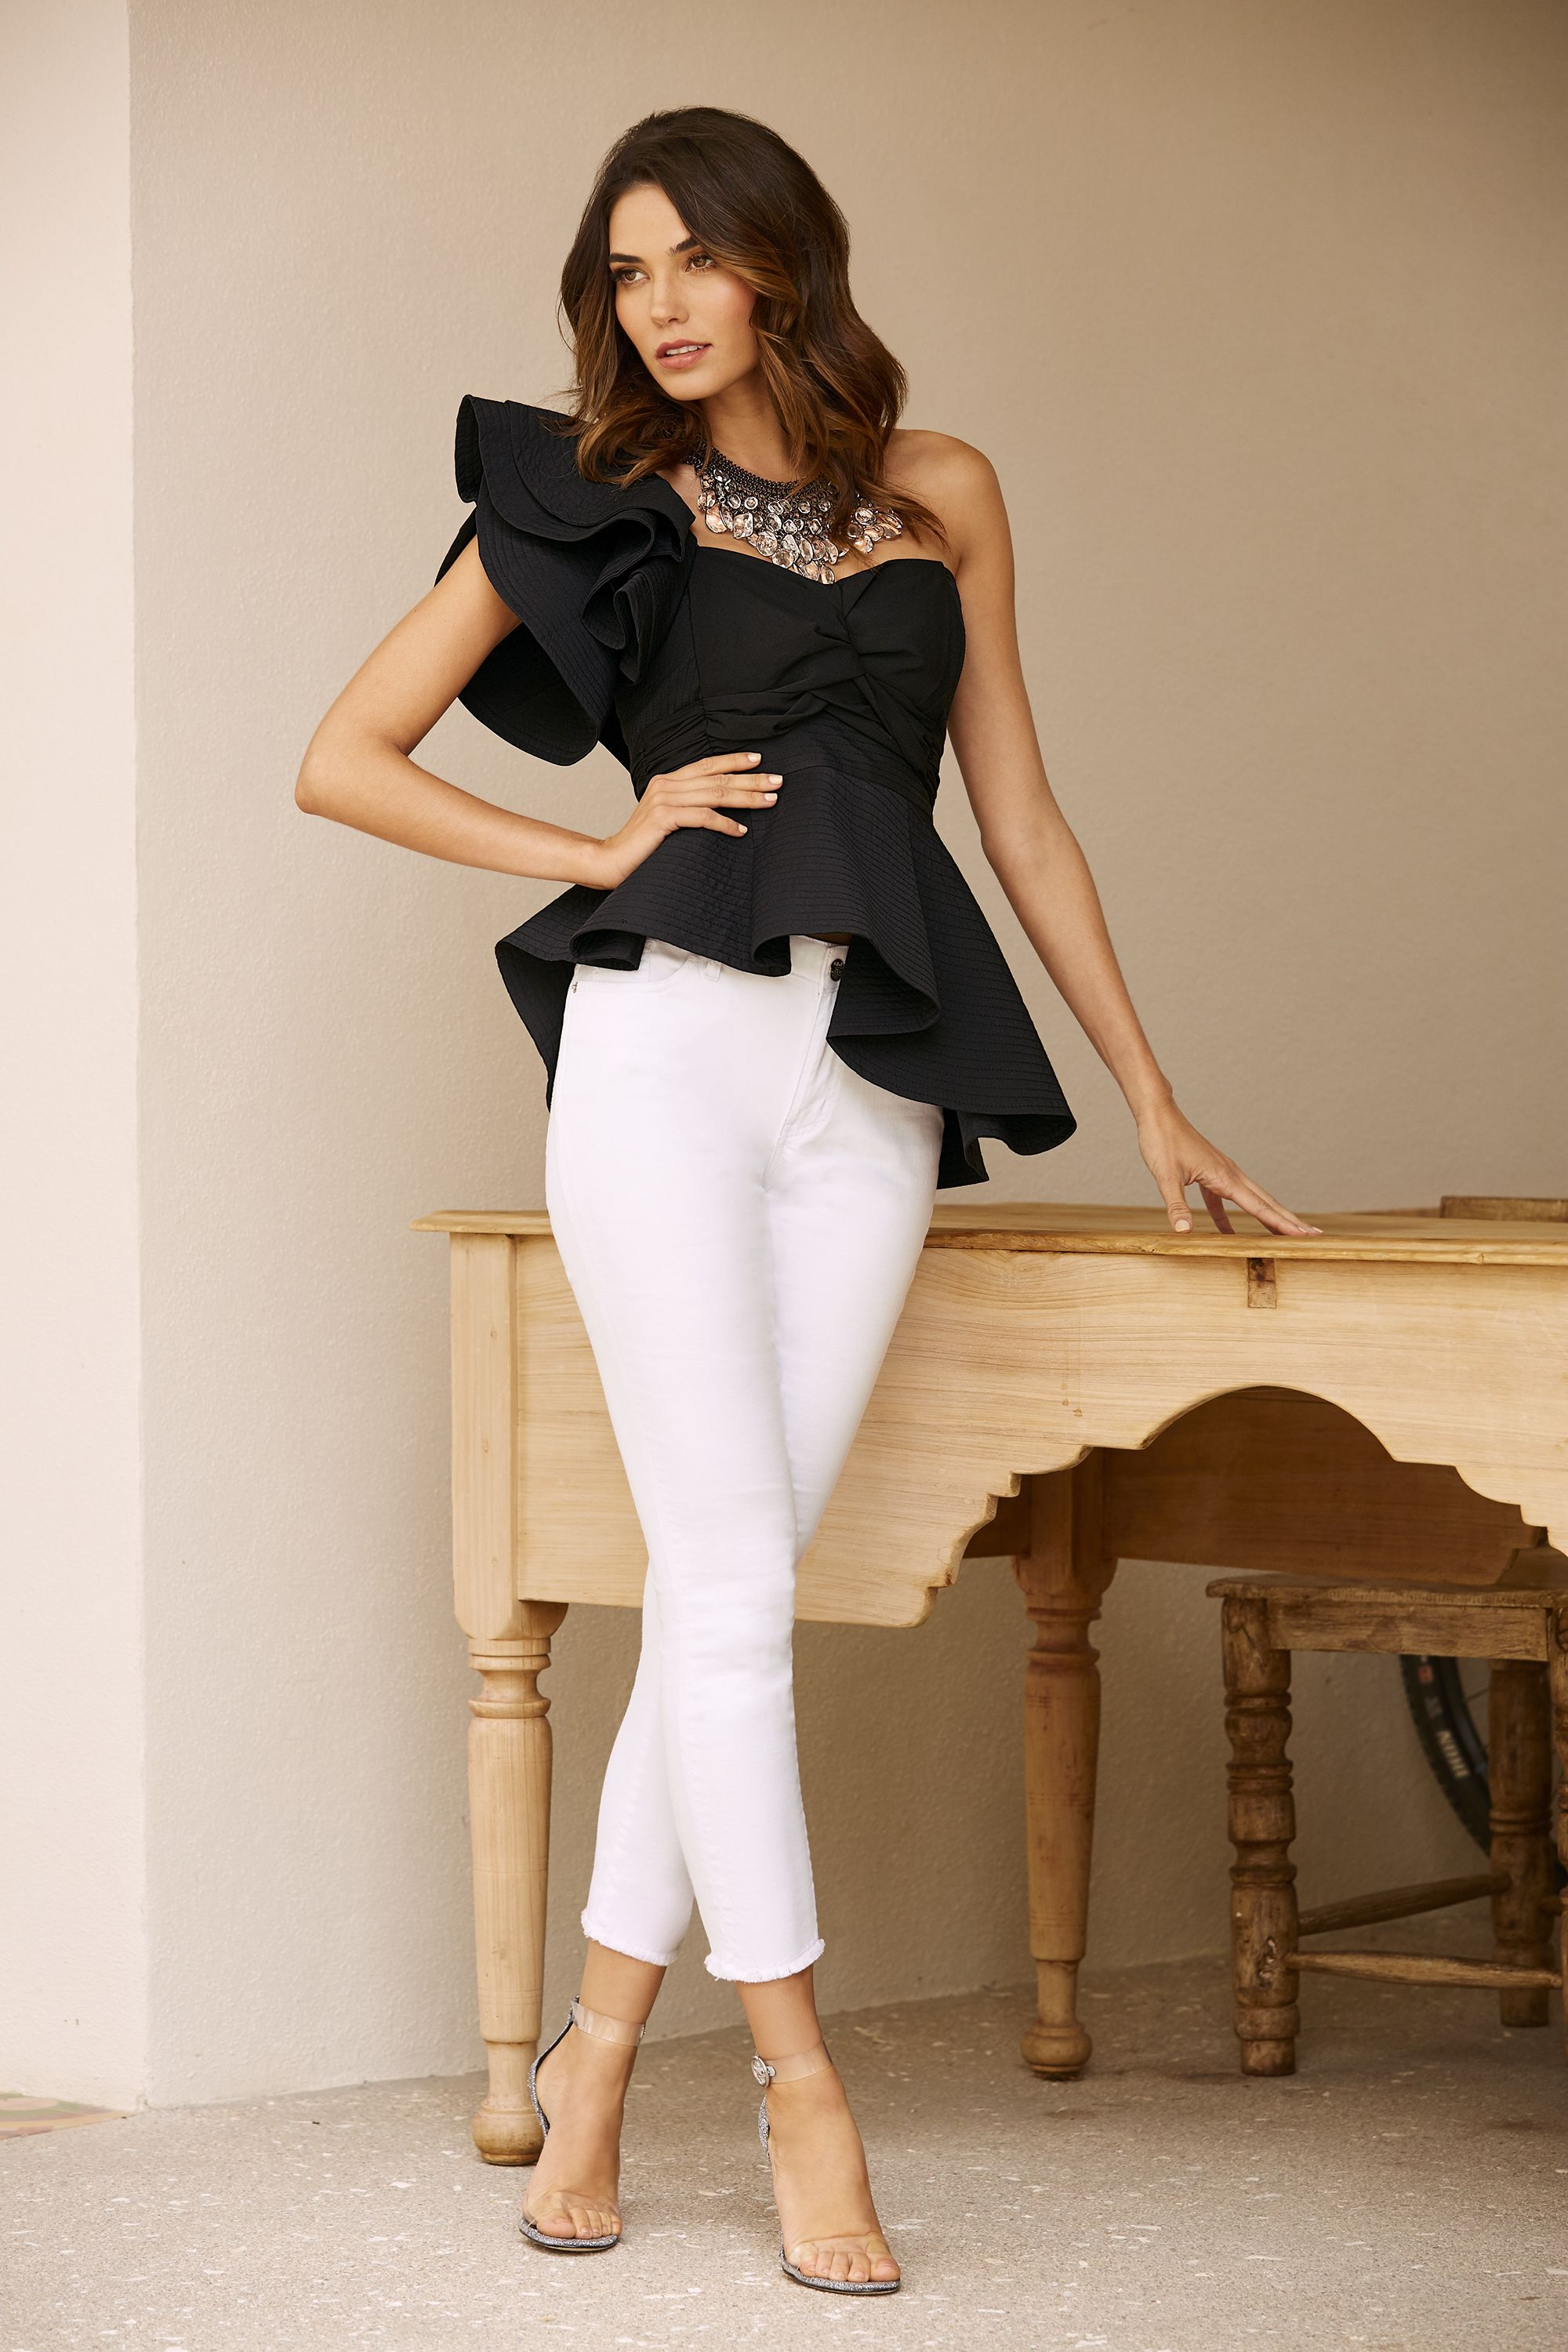 841639df6c2 Women s Asymmetrical Peplum Top paired with our Frayed Hem Ankle Jean by  Boston Proper.  asymmetrical  ruffle  peplum  top